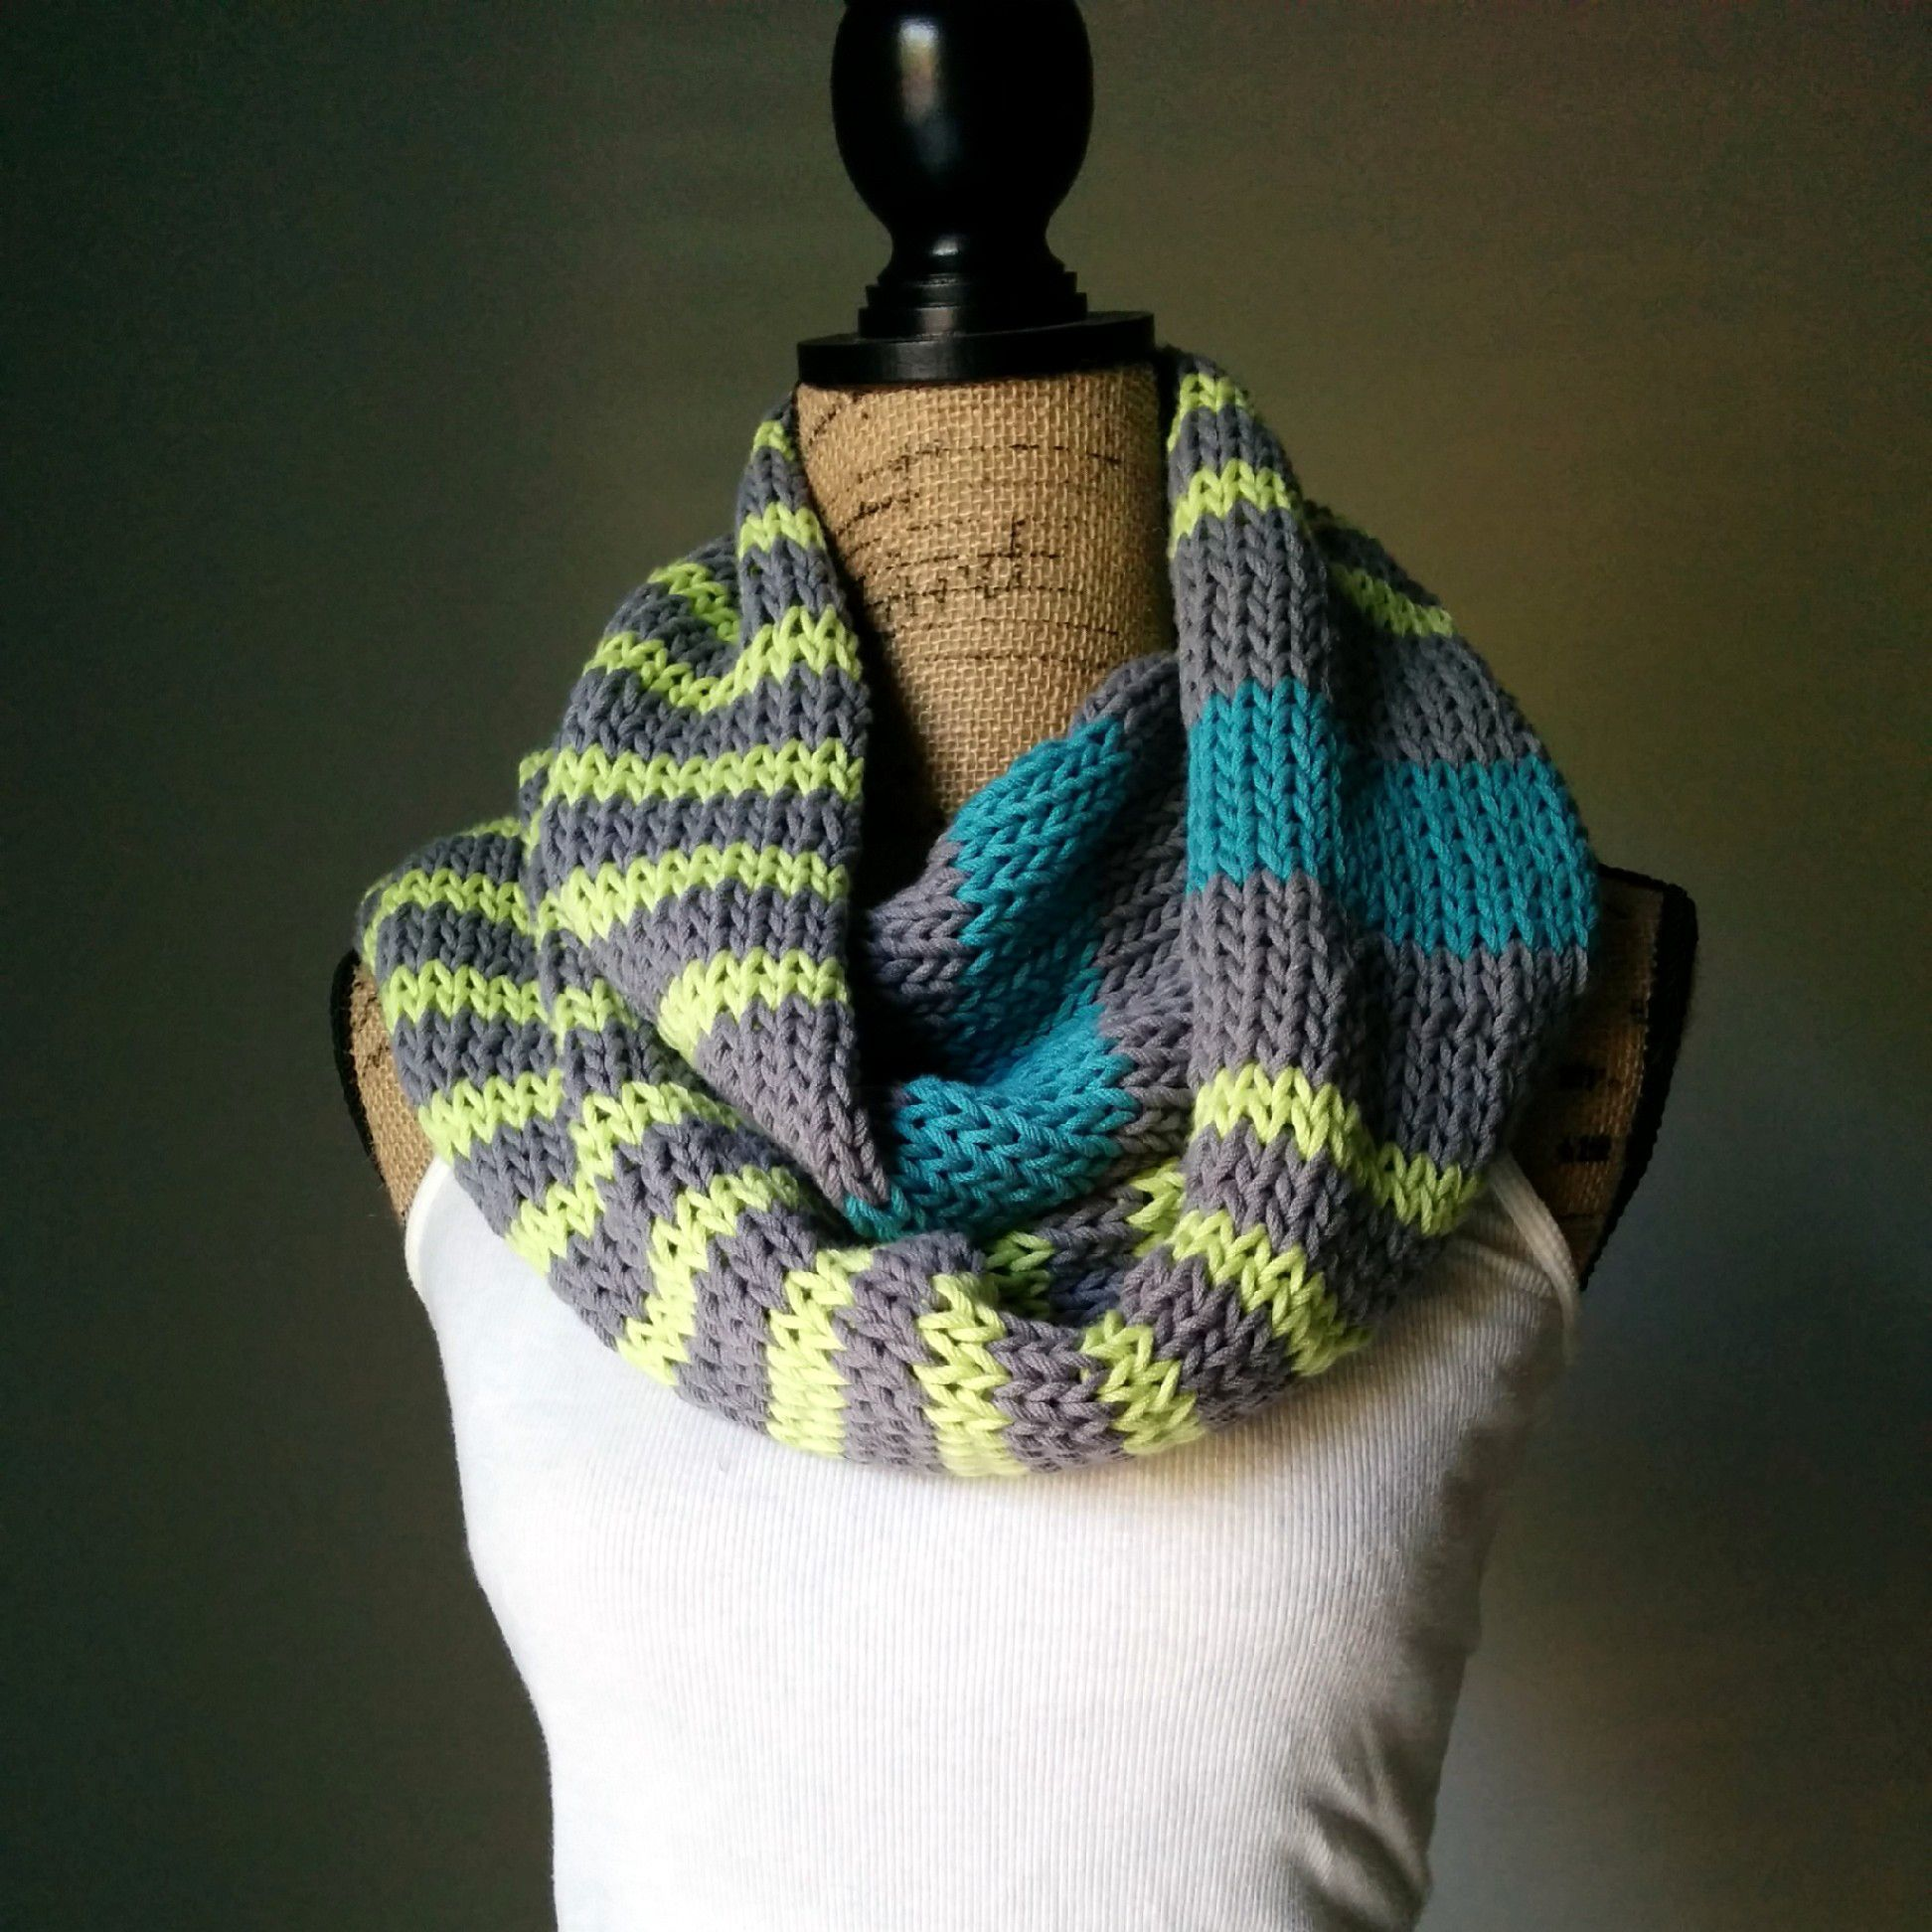 Spring Lace Infinity Scarf By Purl Avenue - Free Knitted Pattern ...